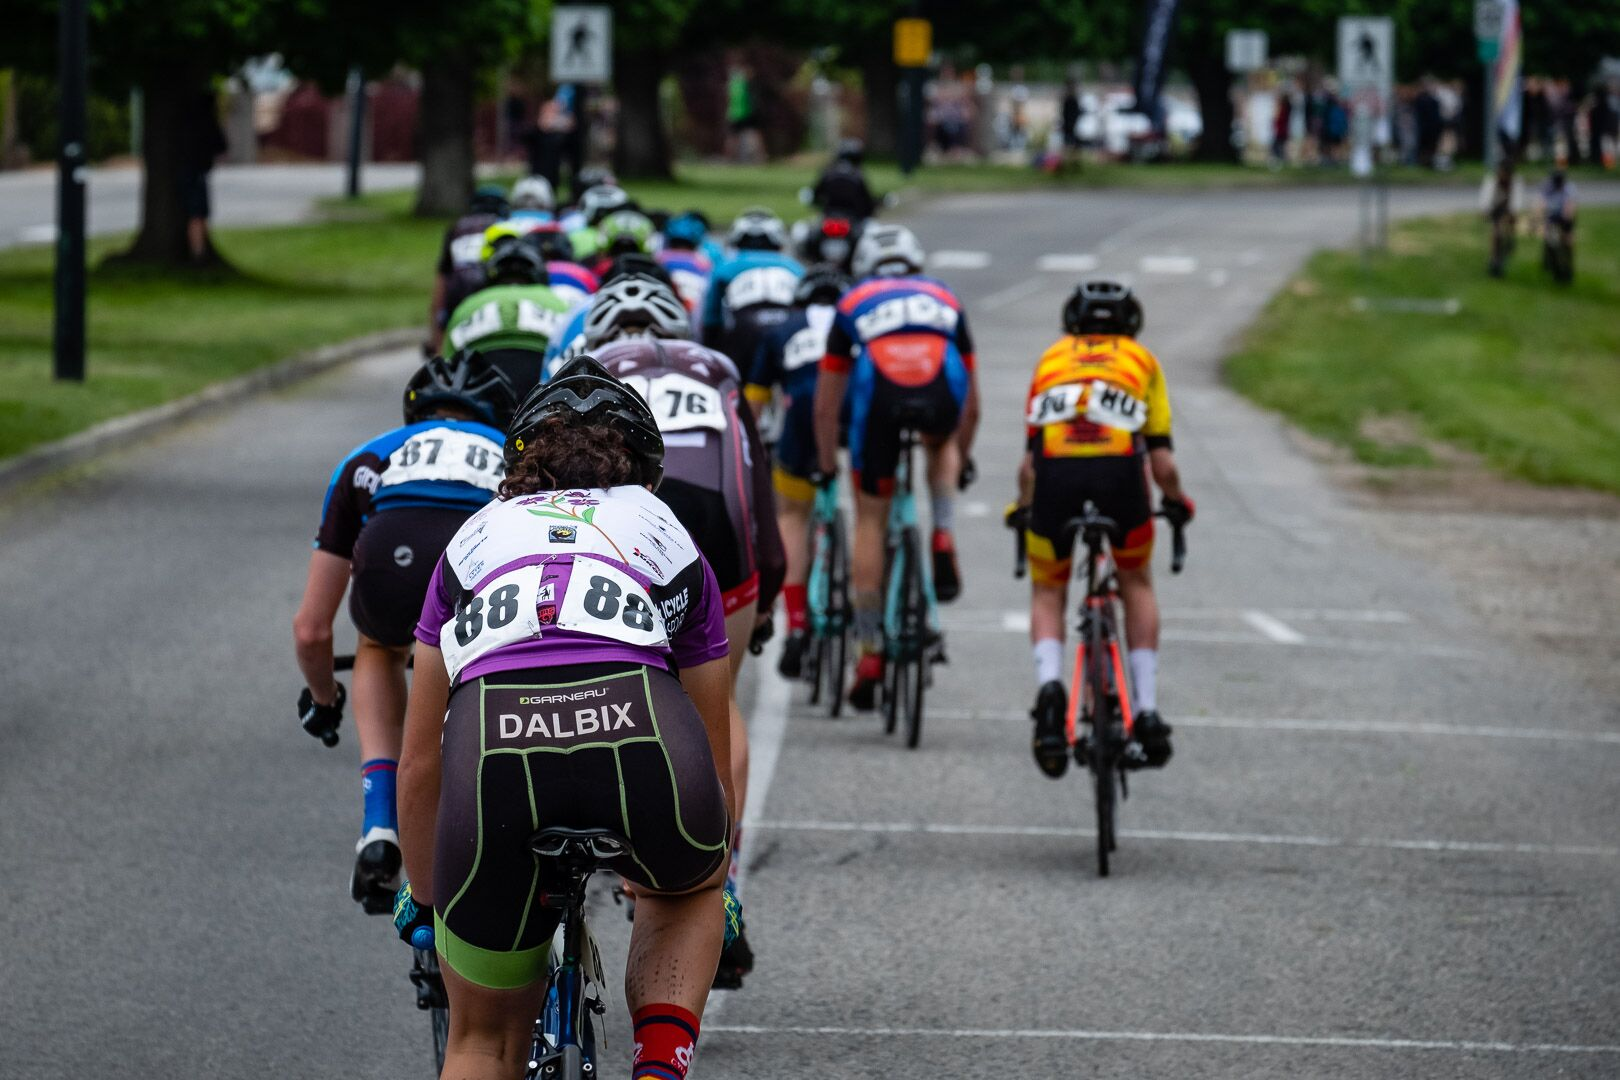 Mara trying to keep up with the boys during stage 3 (crit). Photo by Cody W Gannon.